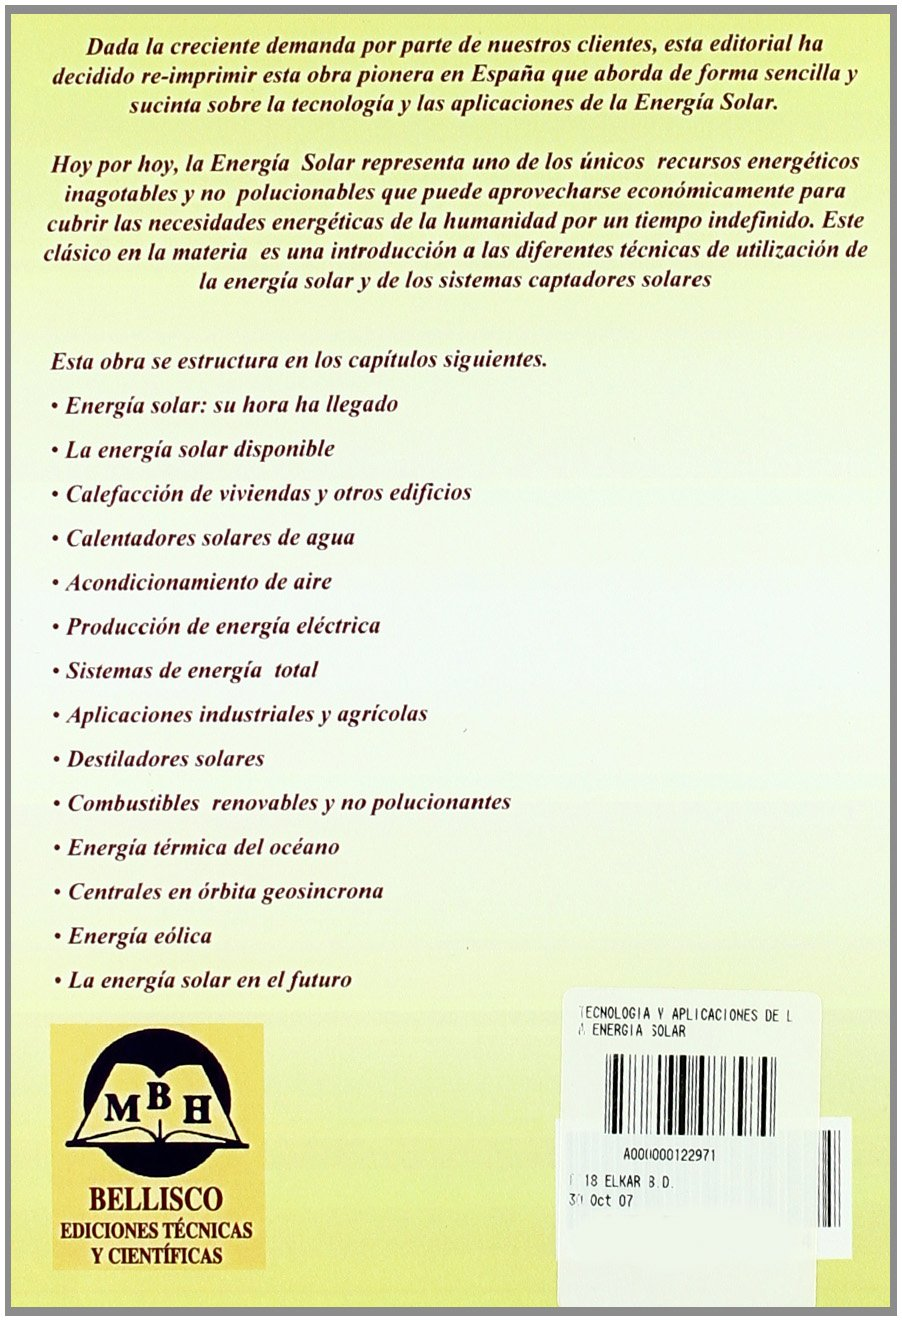 Tecnologia y aplicaciones de la energia solar: Amazon.es: Richard J. Williams: Libros